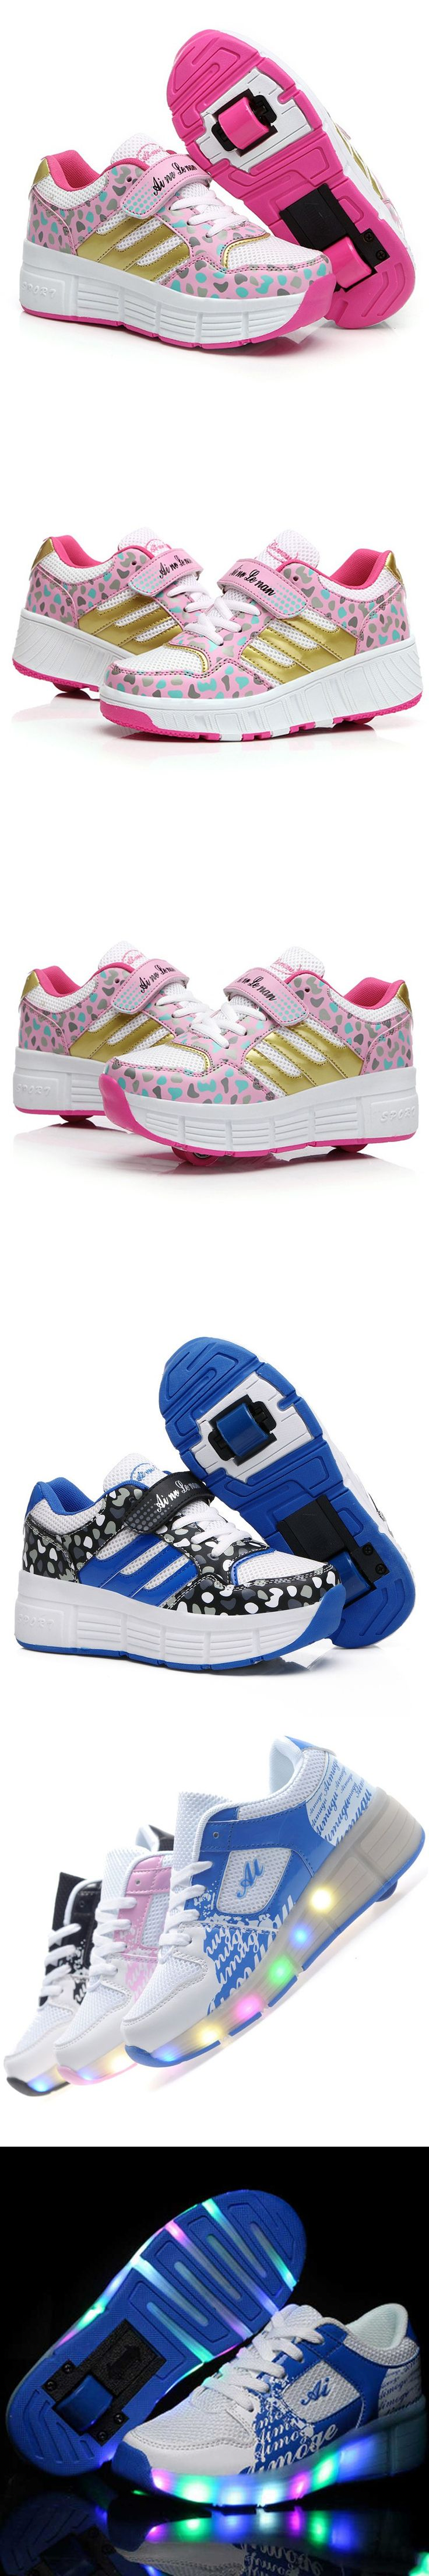 2016 two wheels heelys roller shoes, boys and girls Heelys shoes with wheels children, lights heelys sneakers with wheels kids